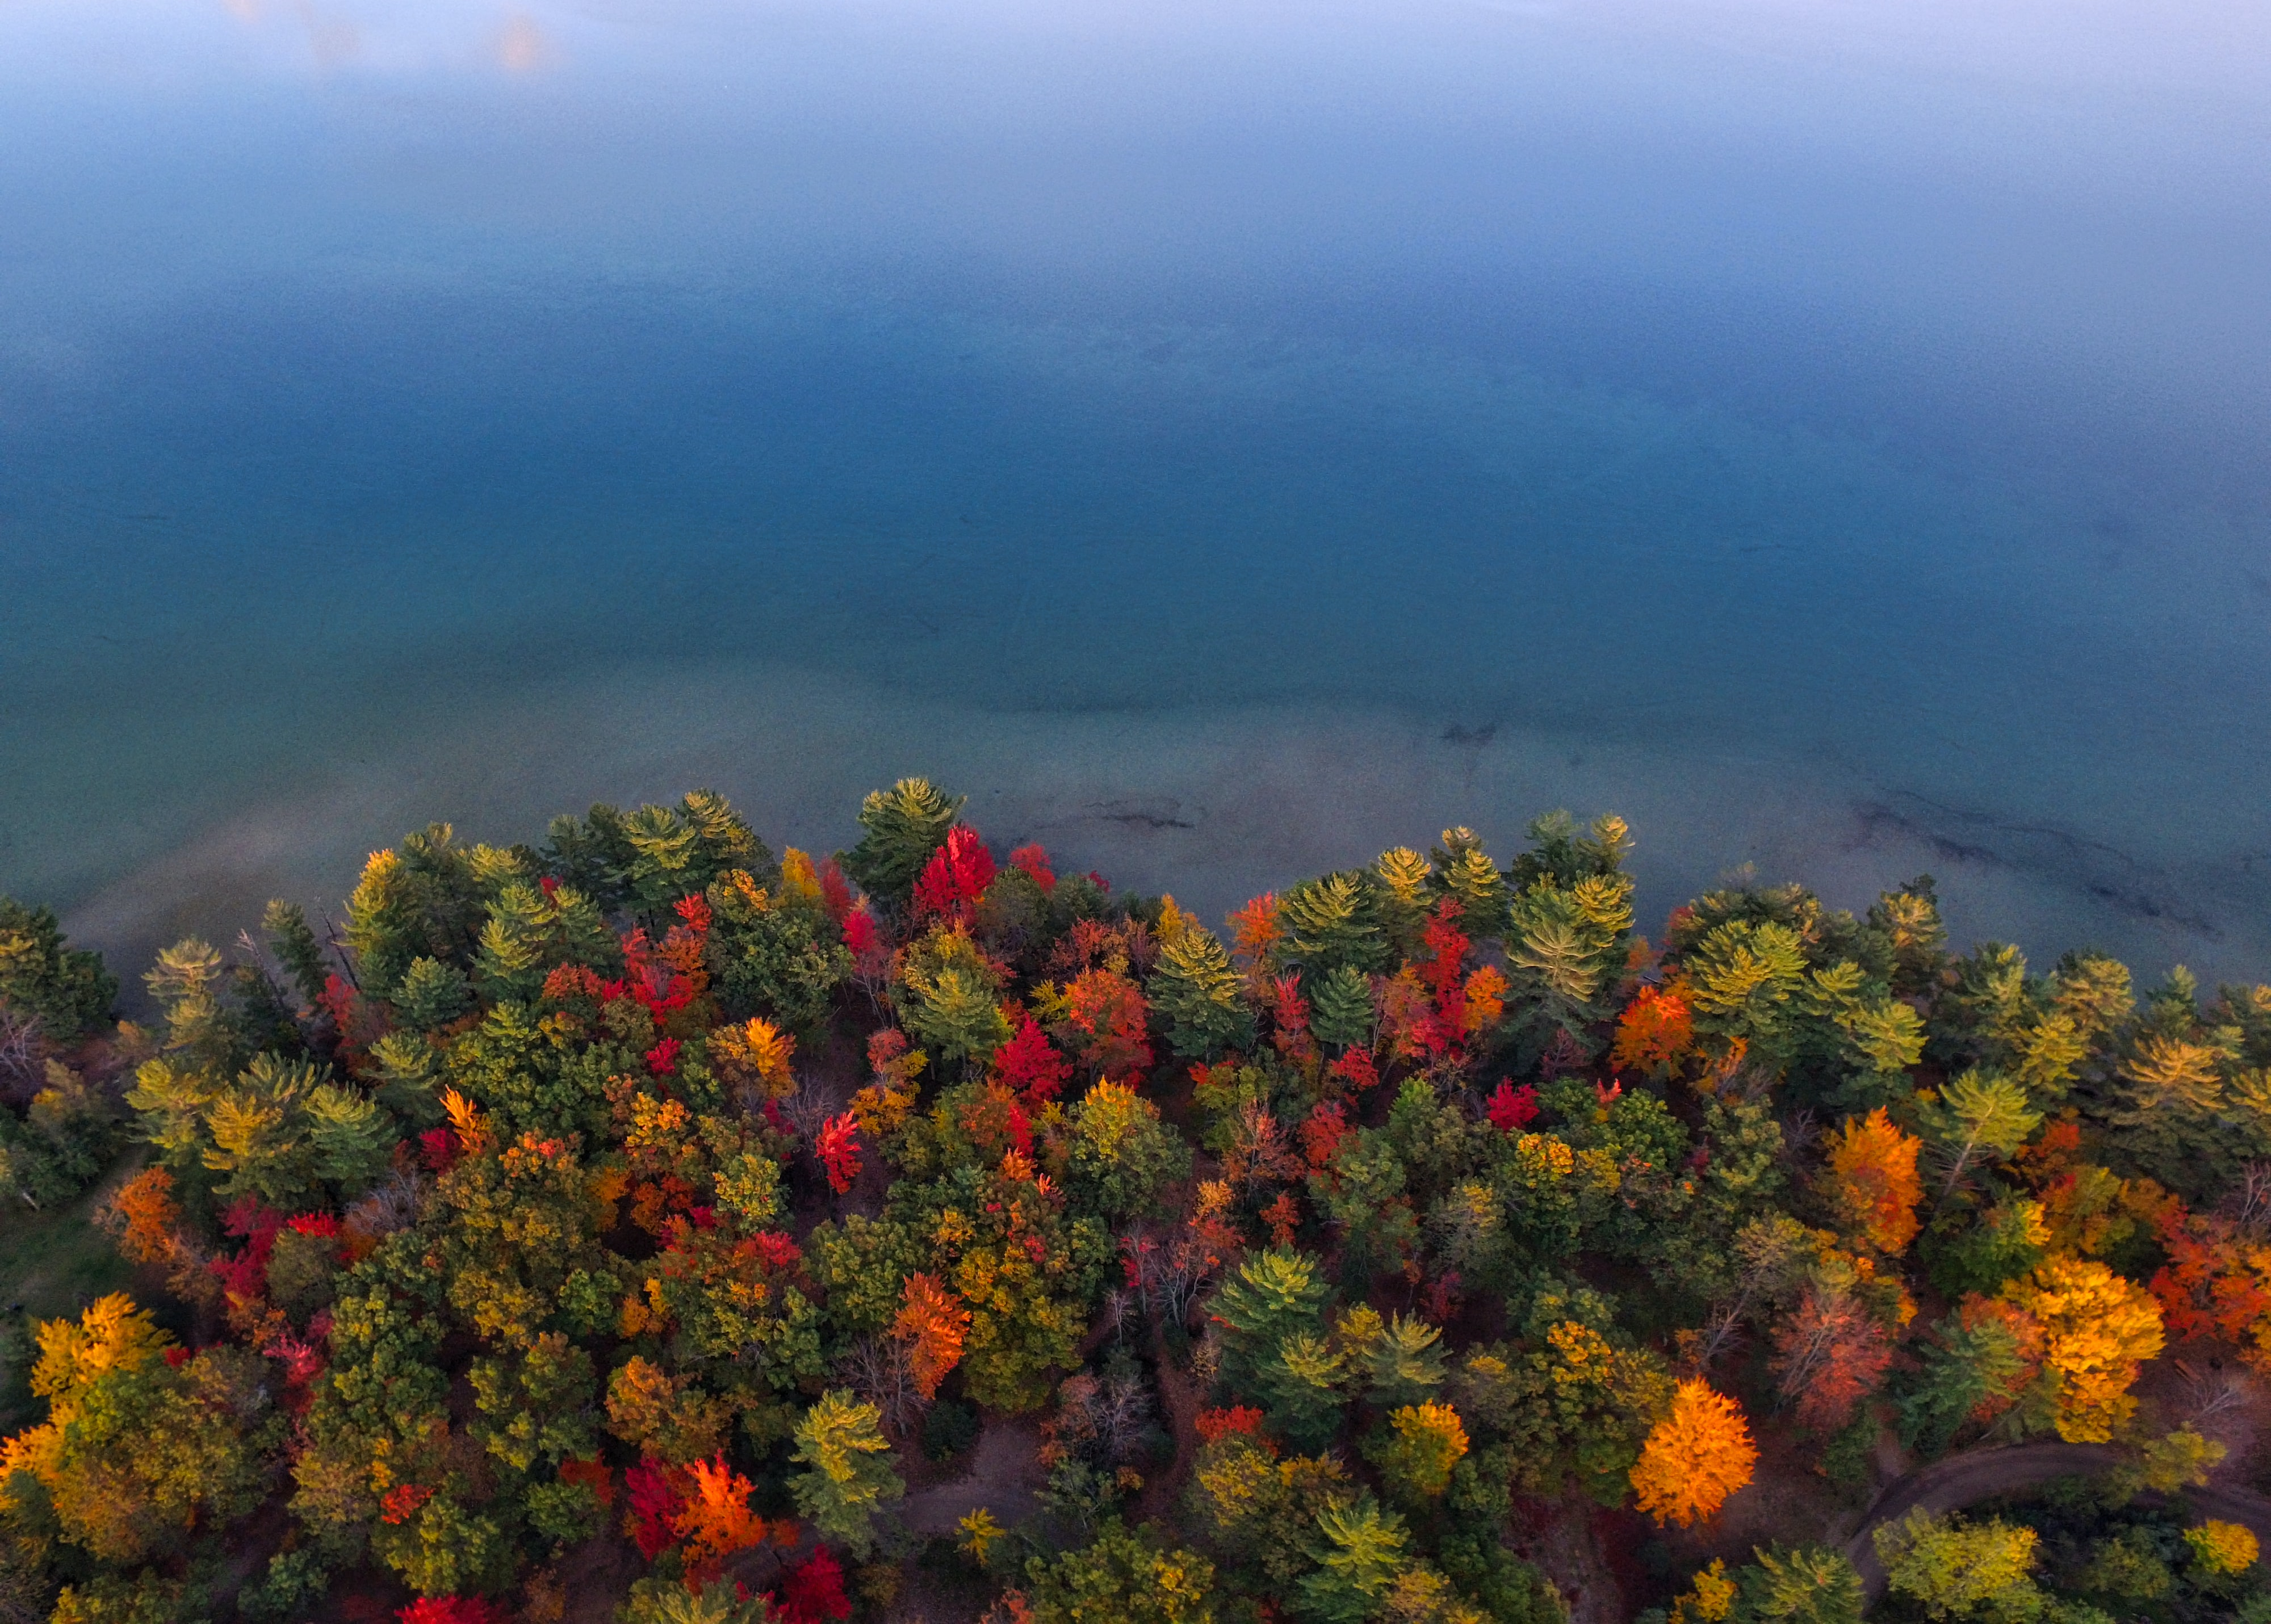 Autumn-colored trees on the shore of a lake in Grayling, Michigan